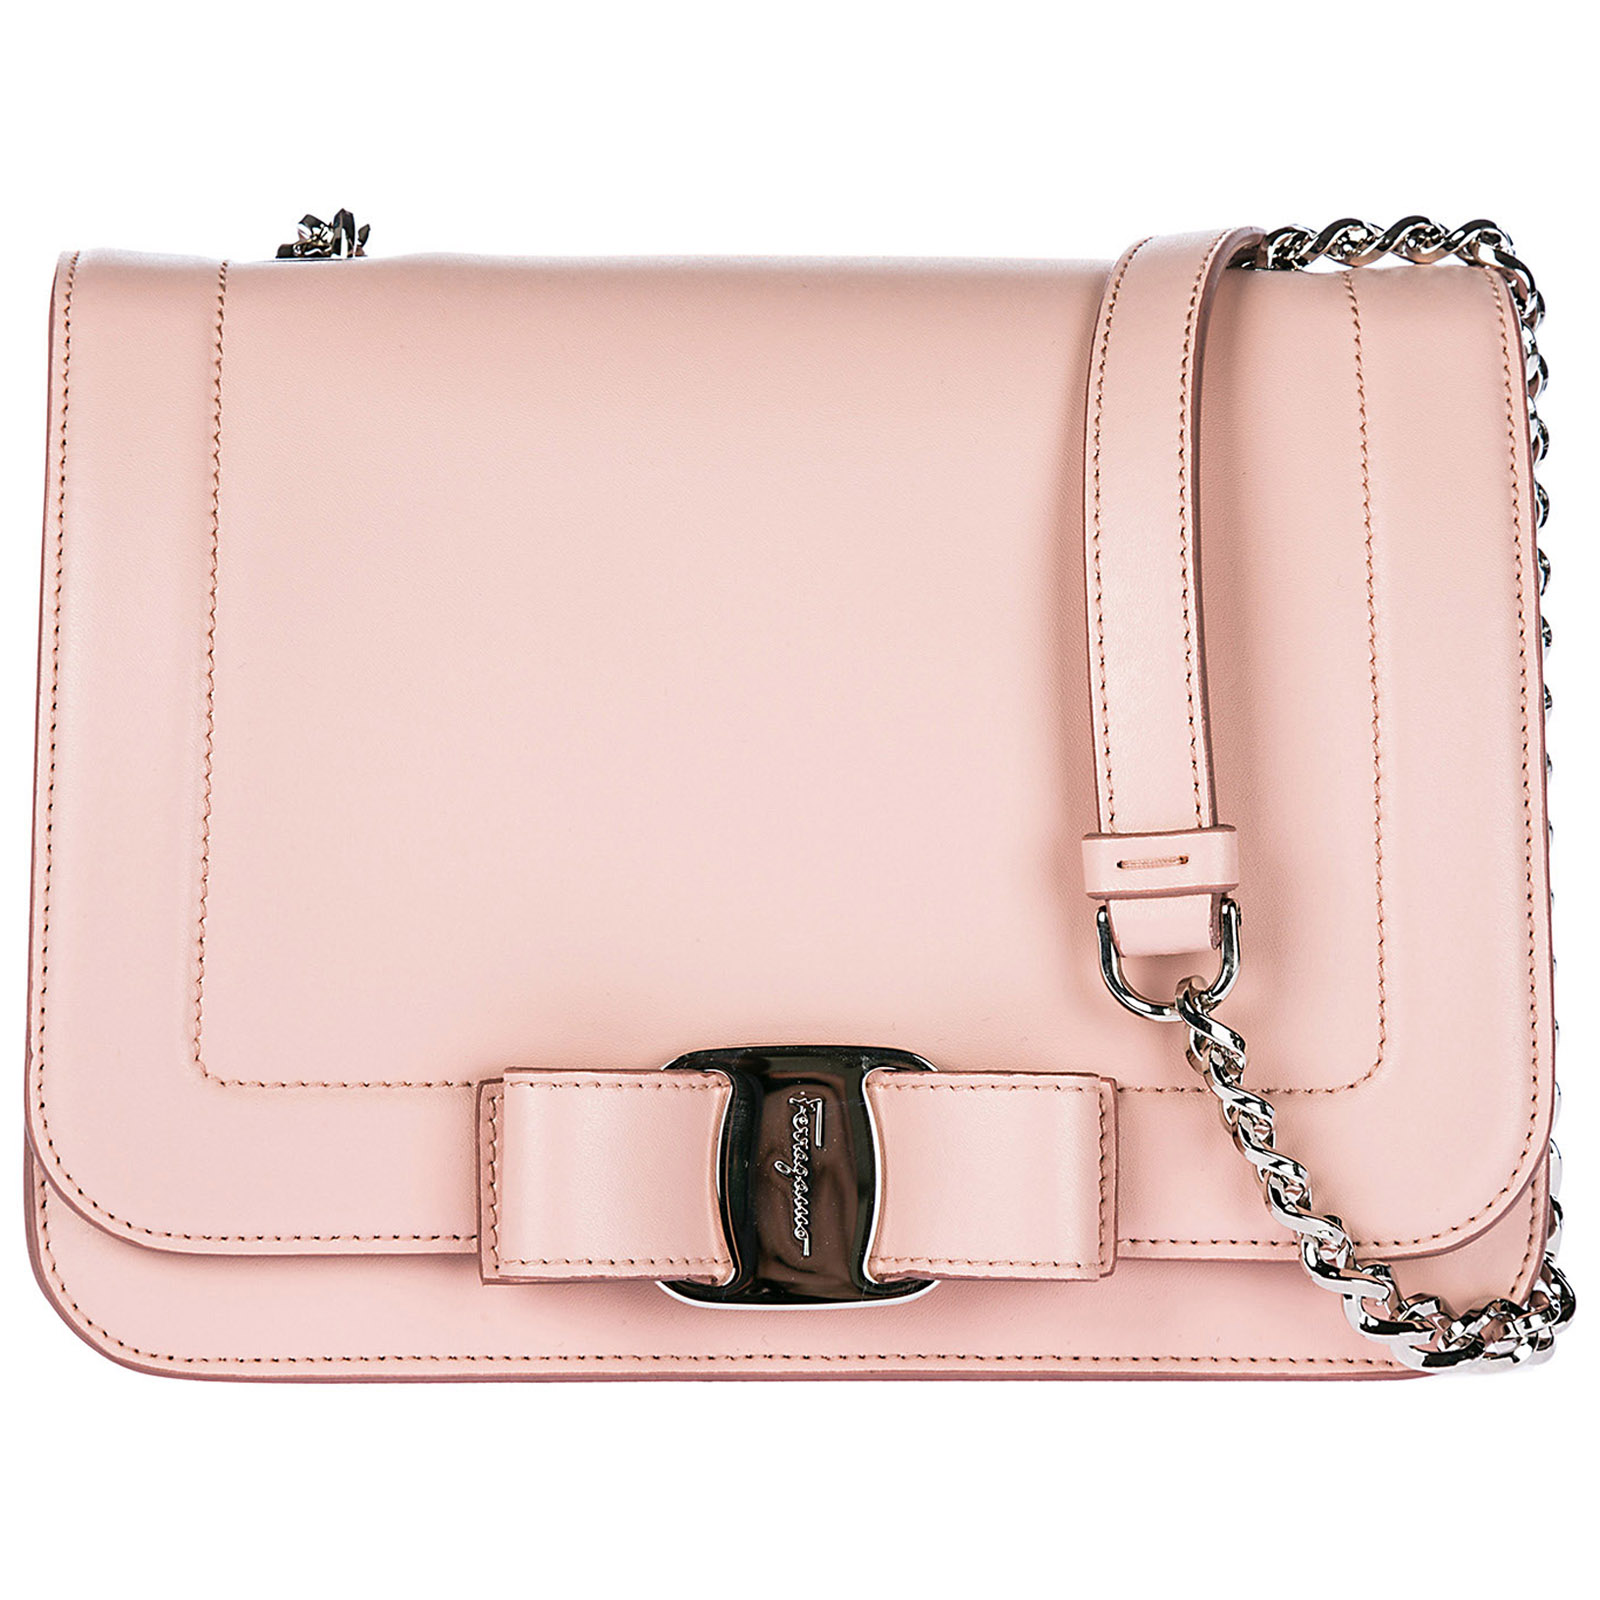 6dc292da84 Salvatore Ferragamo Women s Leather Cross-Body Messenger Shoulder Bag Vara  Rainbow Small In Pink